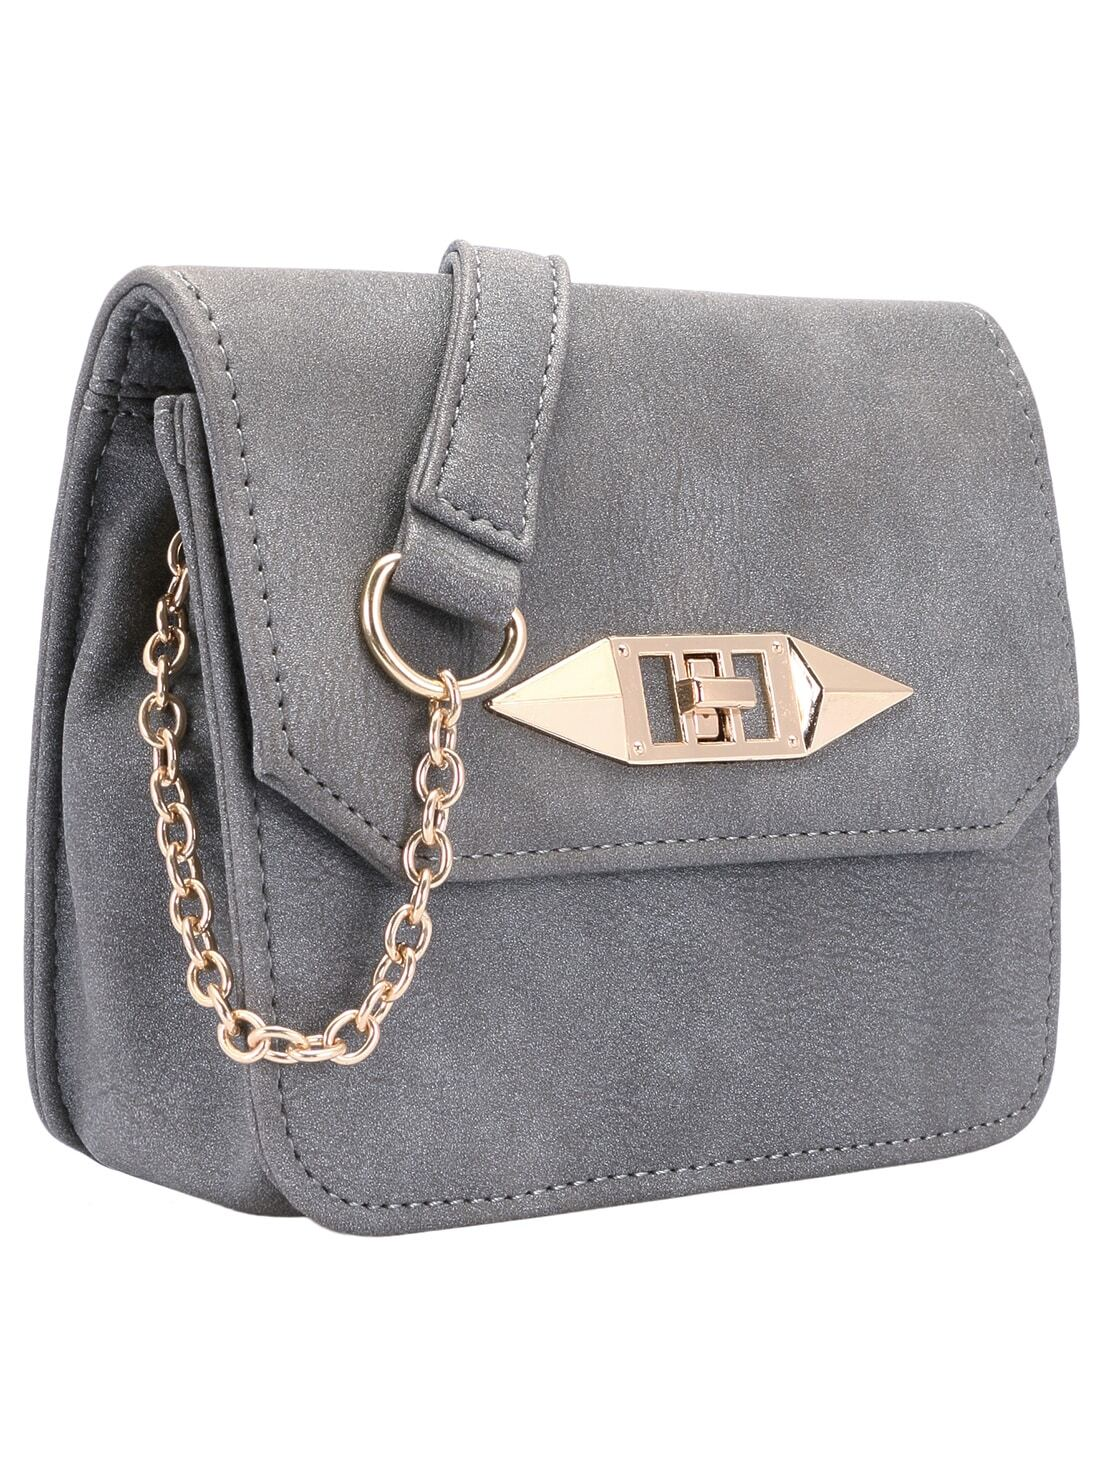 Grey Twist Lock Chain Bag